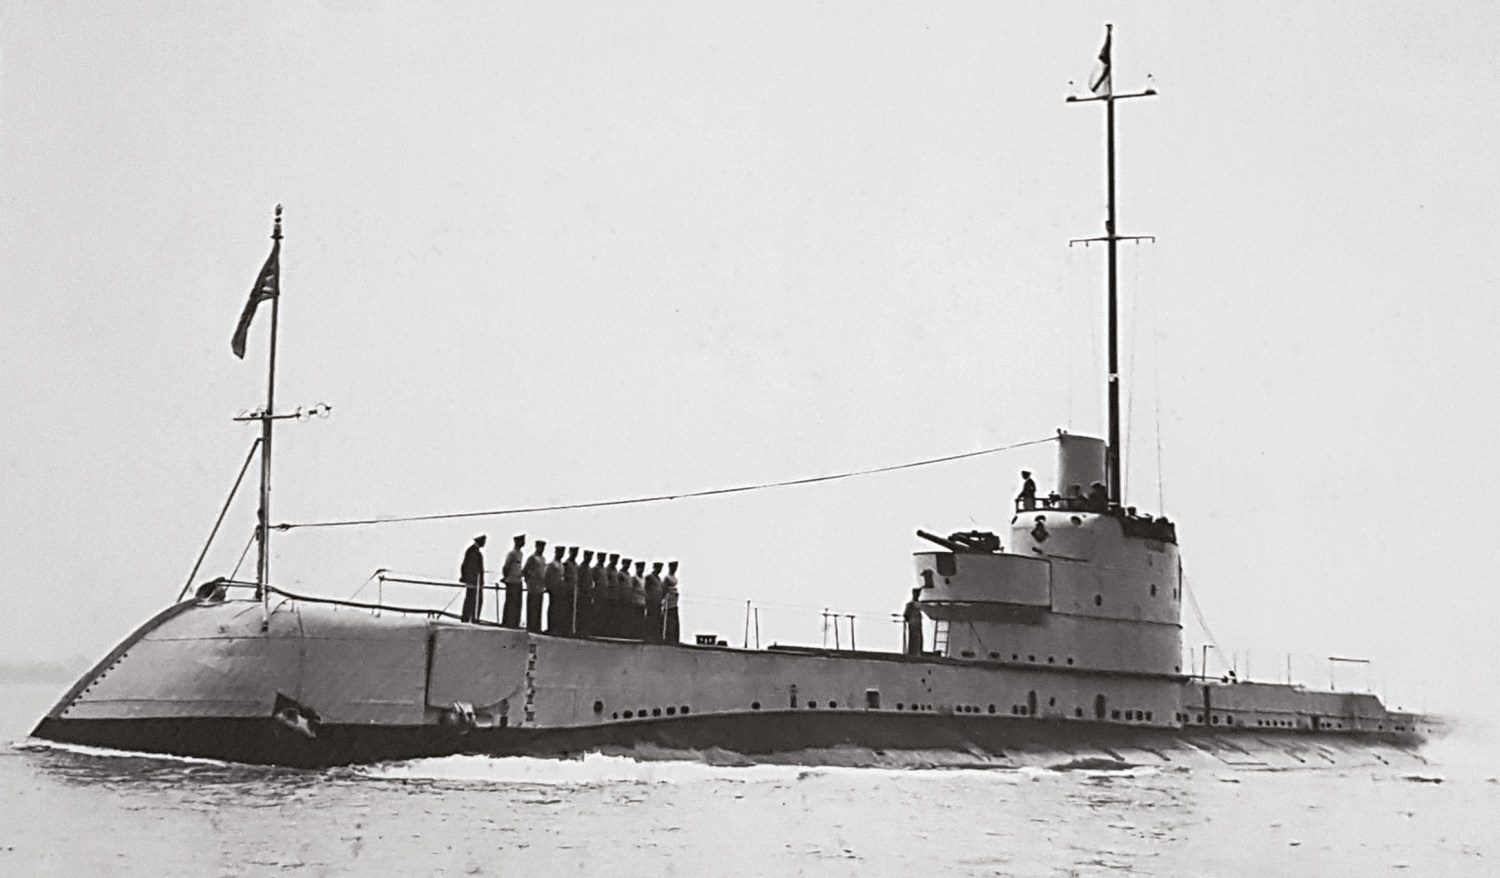 above An early photograph of the British submarine HMS Olympus.